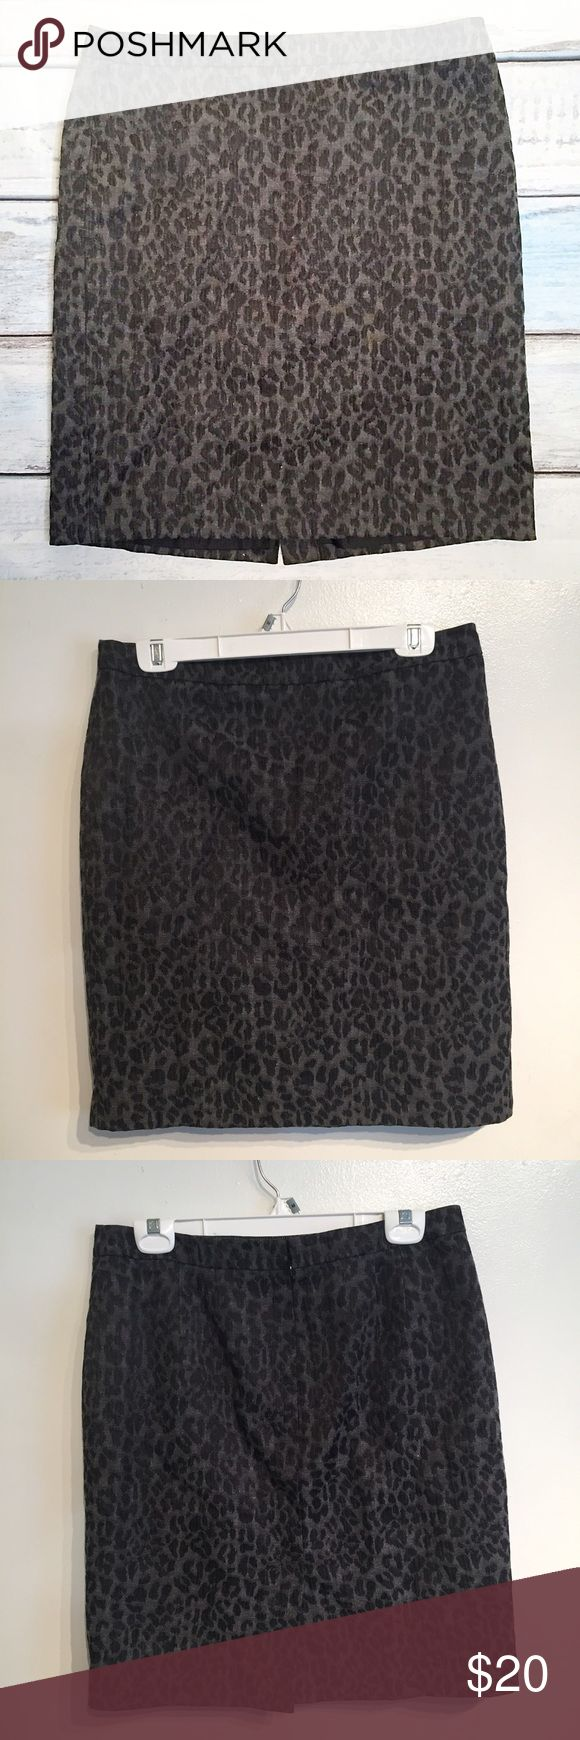 "Ann Taylor LOFT Neutral Animal Print Skirt Ann Taylor LOFT black and grey leopard print skirt. Size 10. Can be dressed up for the office or down for a night out. Measures 16"" flat at the waist and 21"" long. No modeling. Smoke free home. I do discount bundles. LOFT Skirts Pencil"